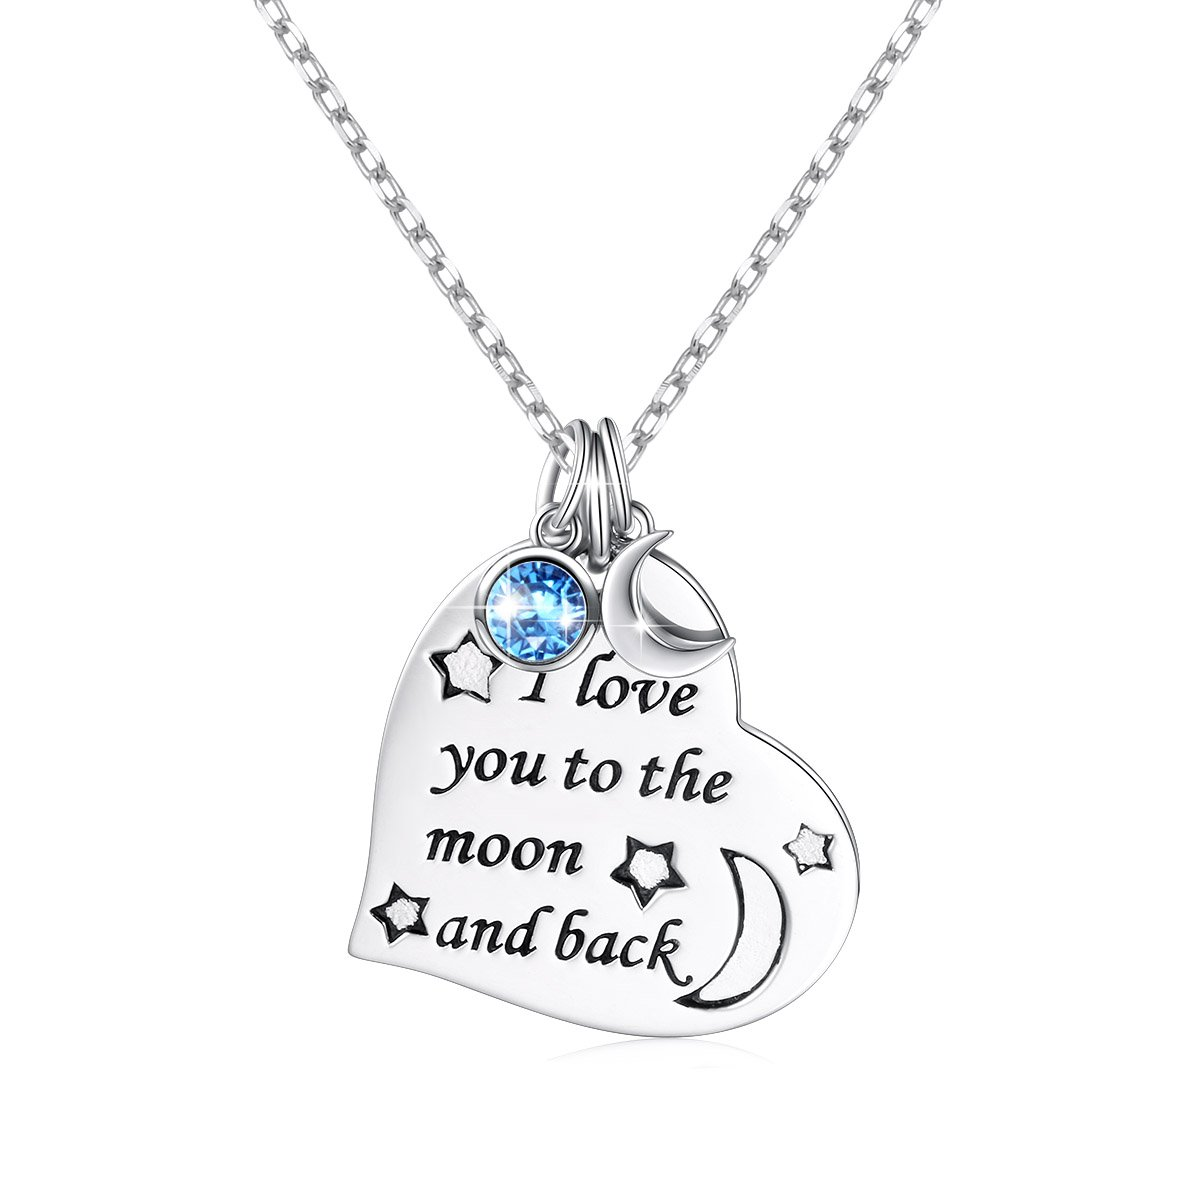 Birthday Gift Jewelry 925 Sterling Silver Engraved I Love You to The Moon and Back Heart Pendant Necklace for Women, 18''